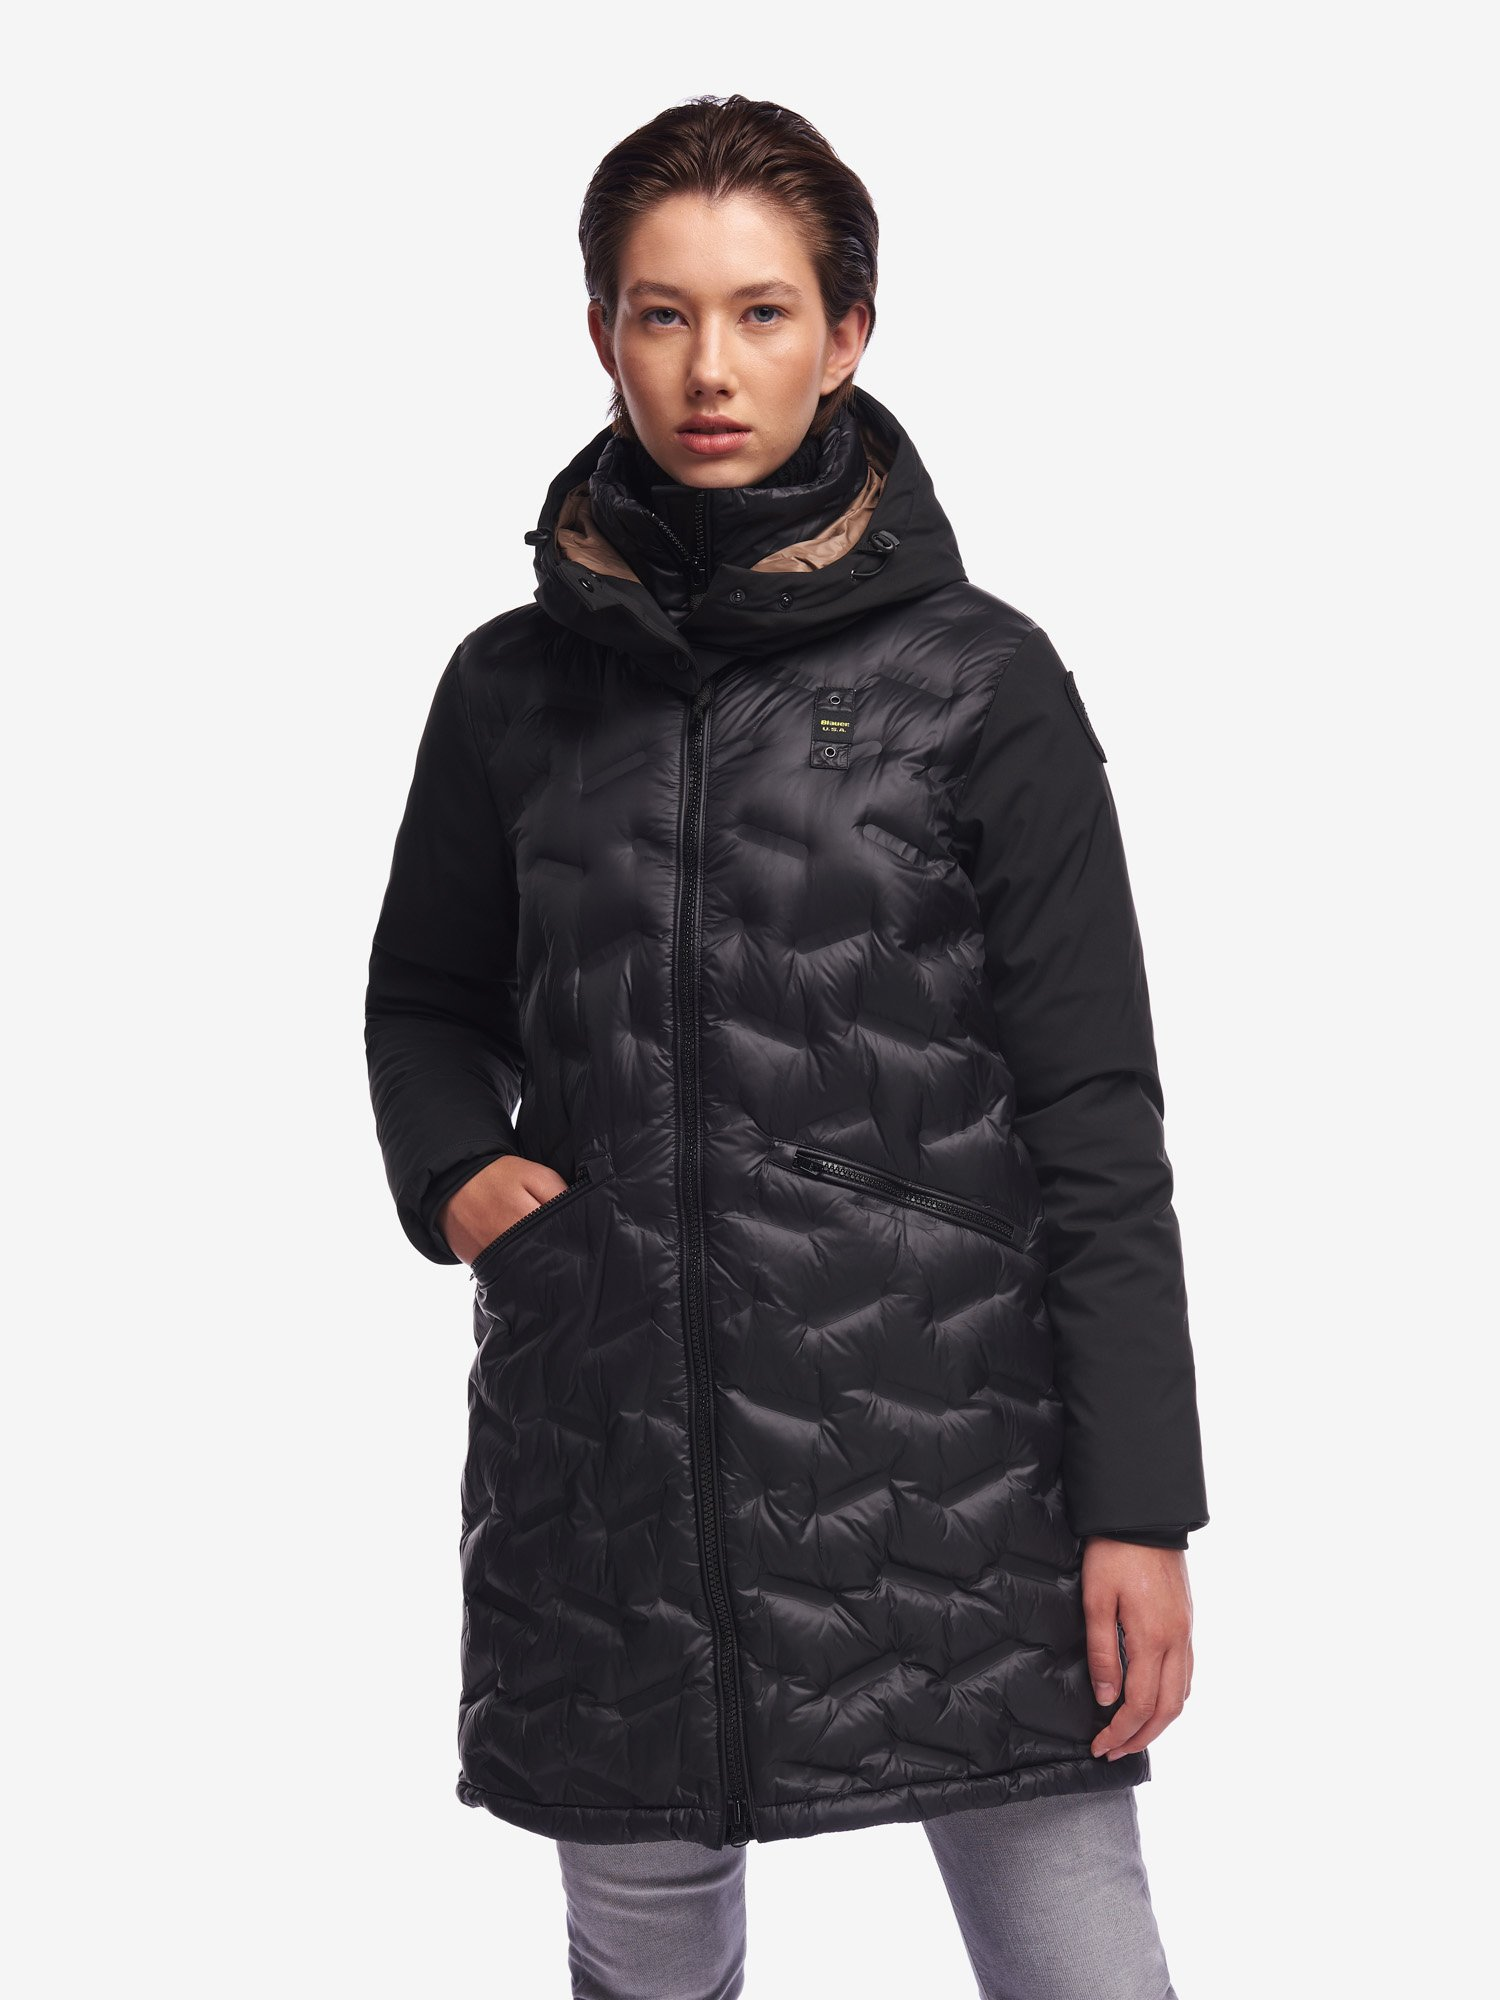 JENKINS LONG NYLON AND NEOPRENE DOWN JACKET - Blauer